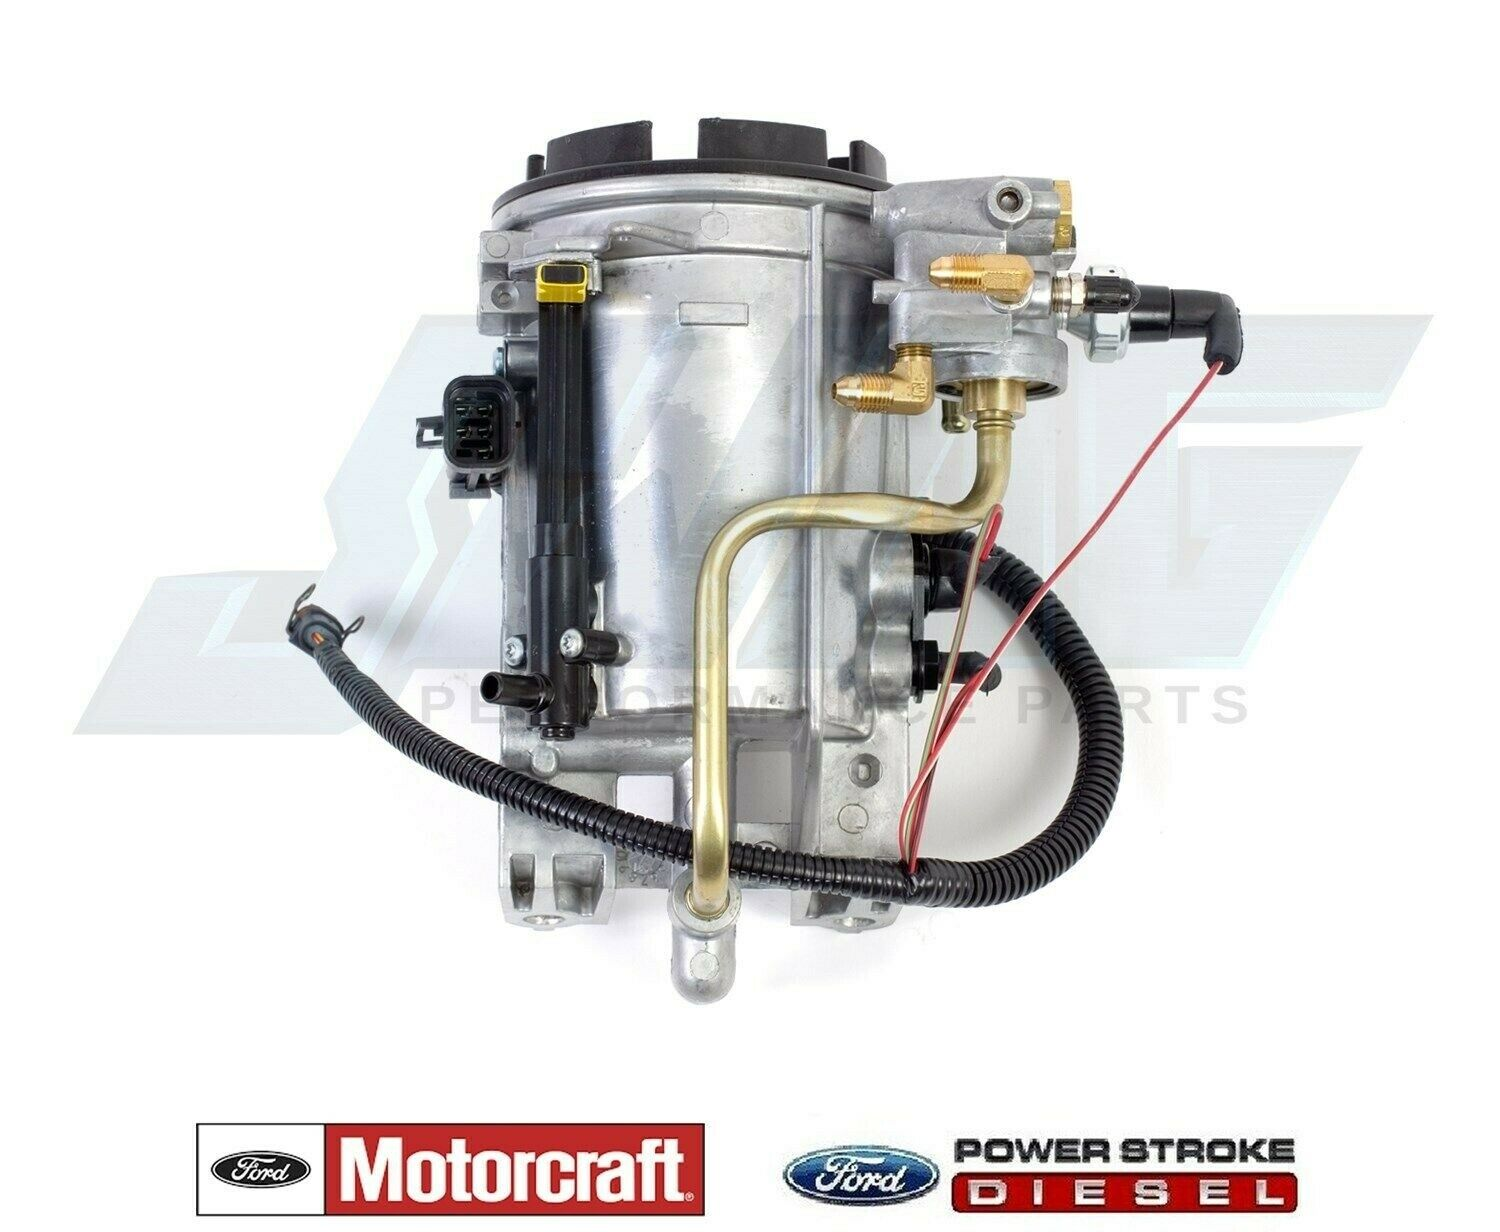 hight resolution of ford 7 3 fuel filter assy wiring library1 of 4only 2 available 96 97 ford 7